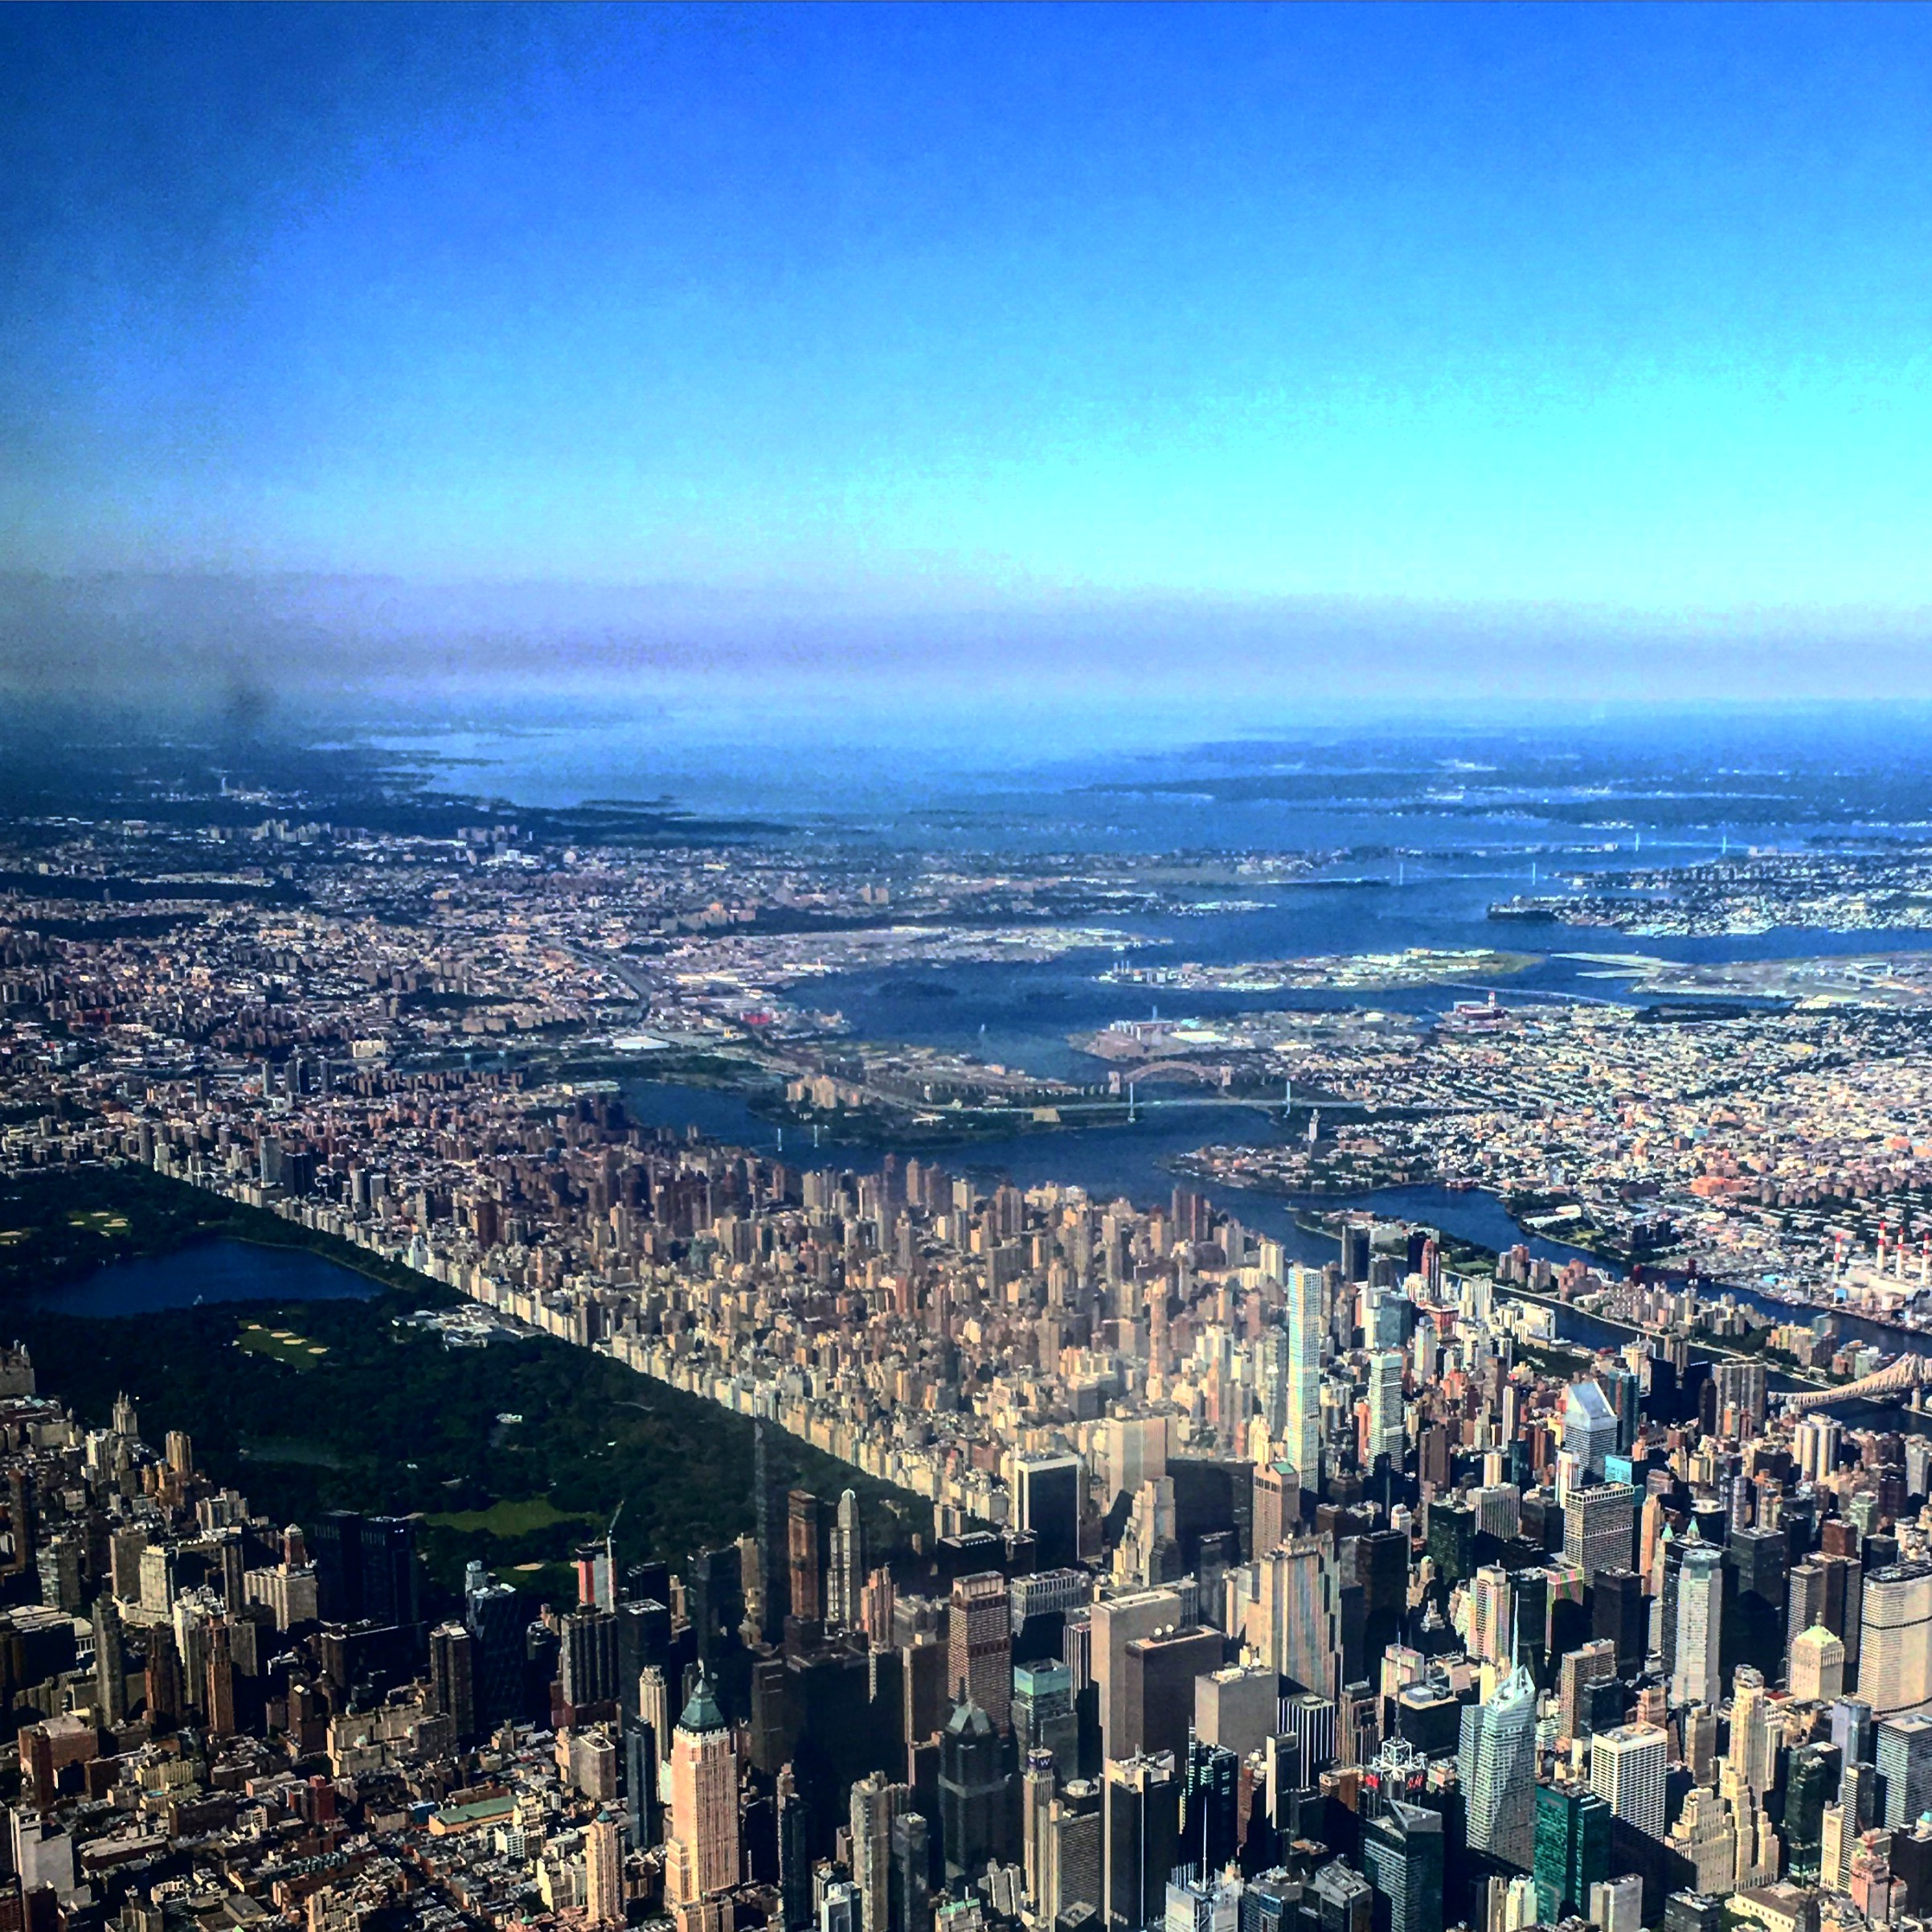 Central Park from a plane